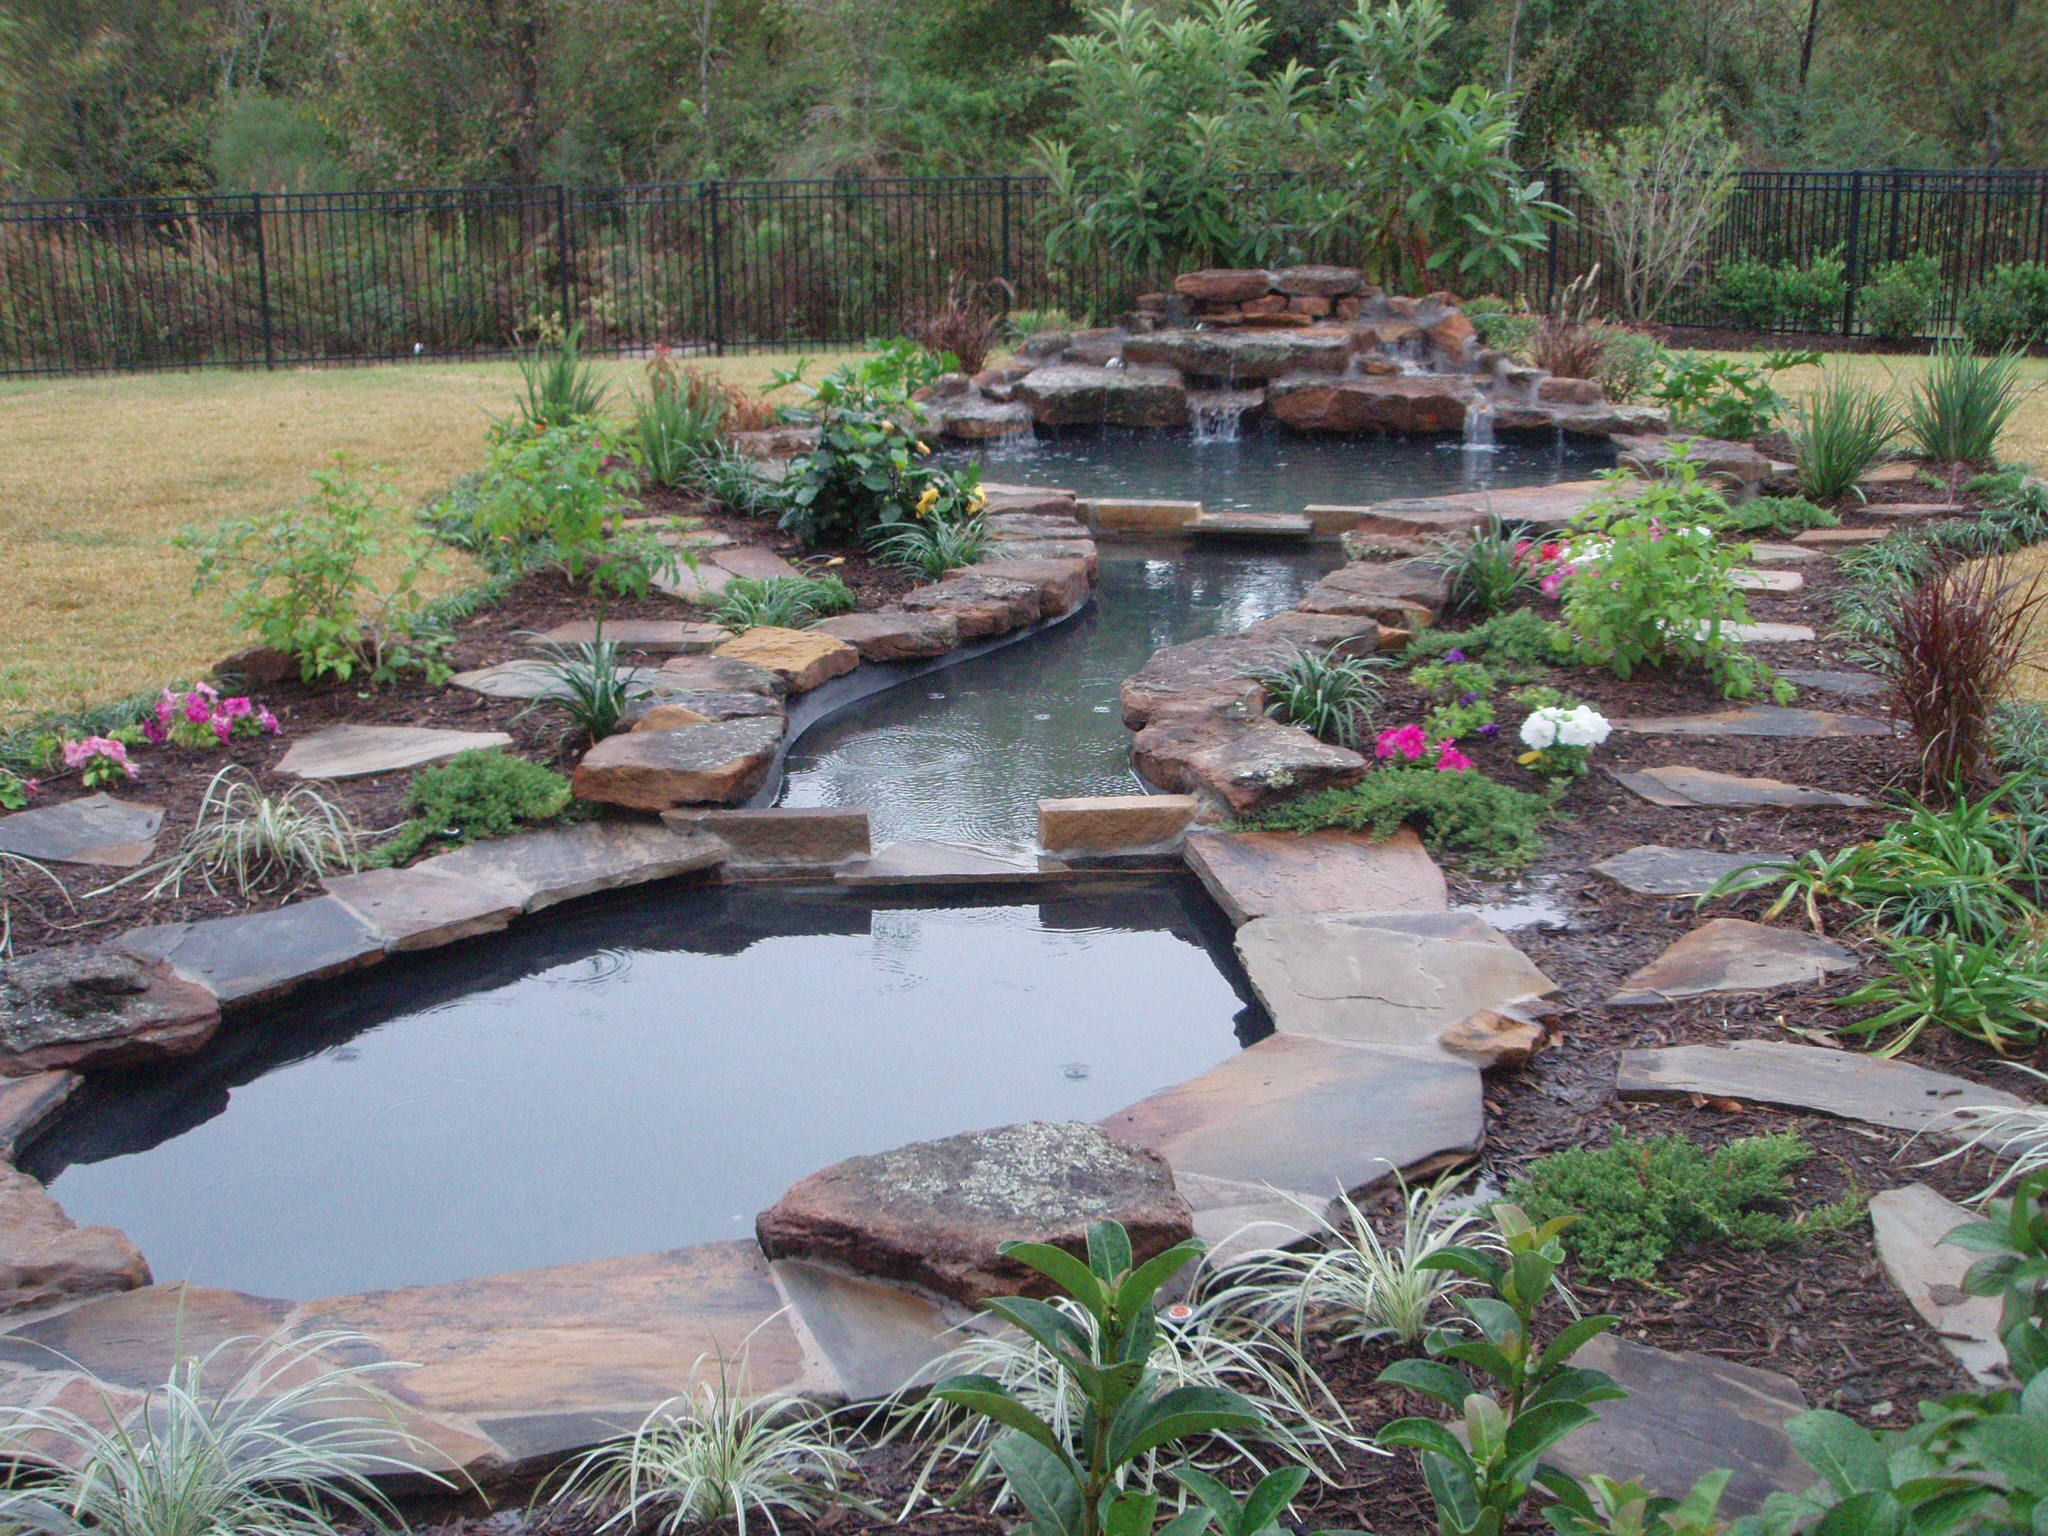 Natural pond landscaping home garden ideas large for Koi fish pond garden design ideas